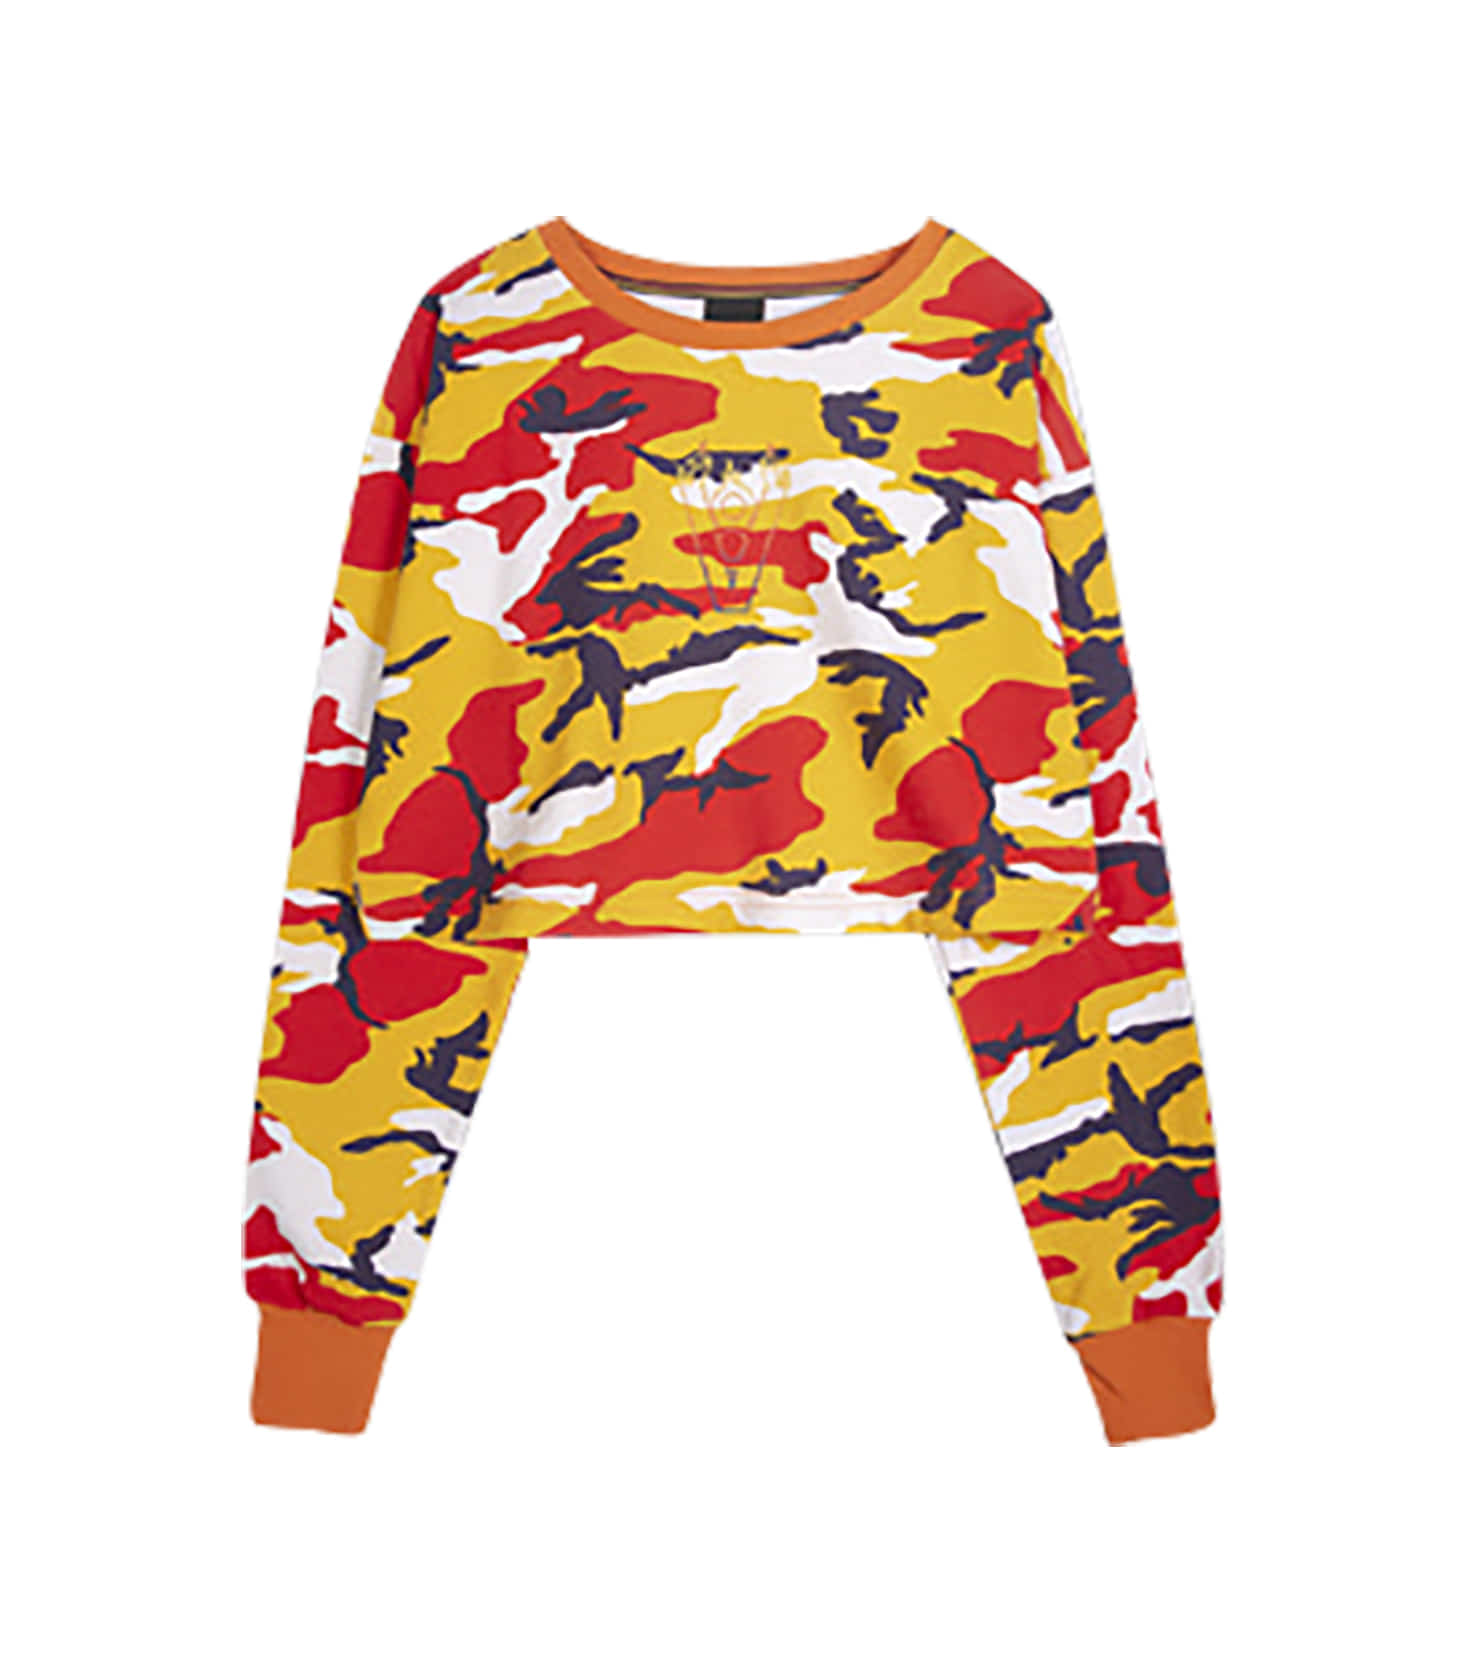 BLAZE LOGO CROP TOP (CAMO)